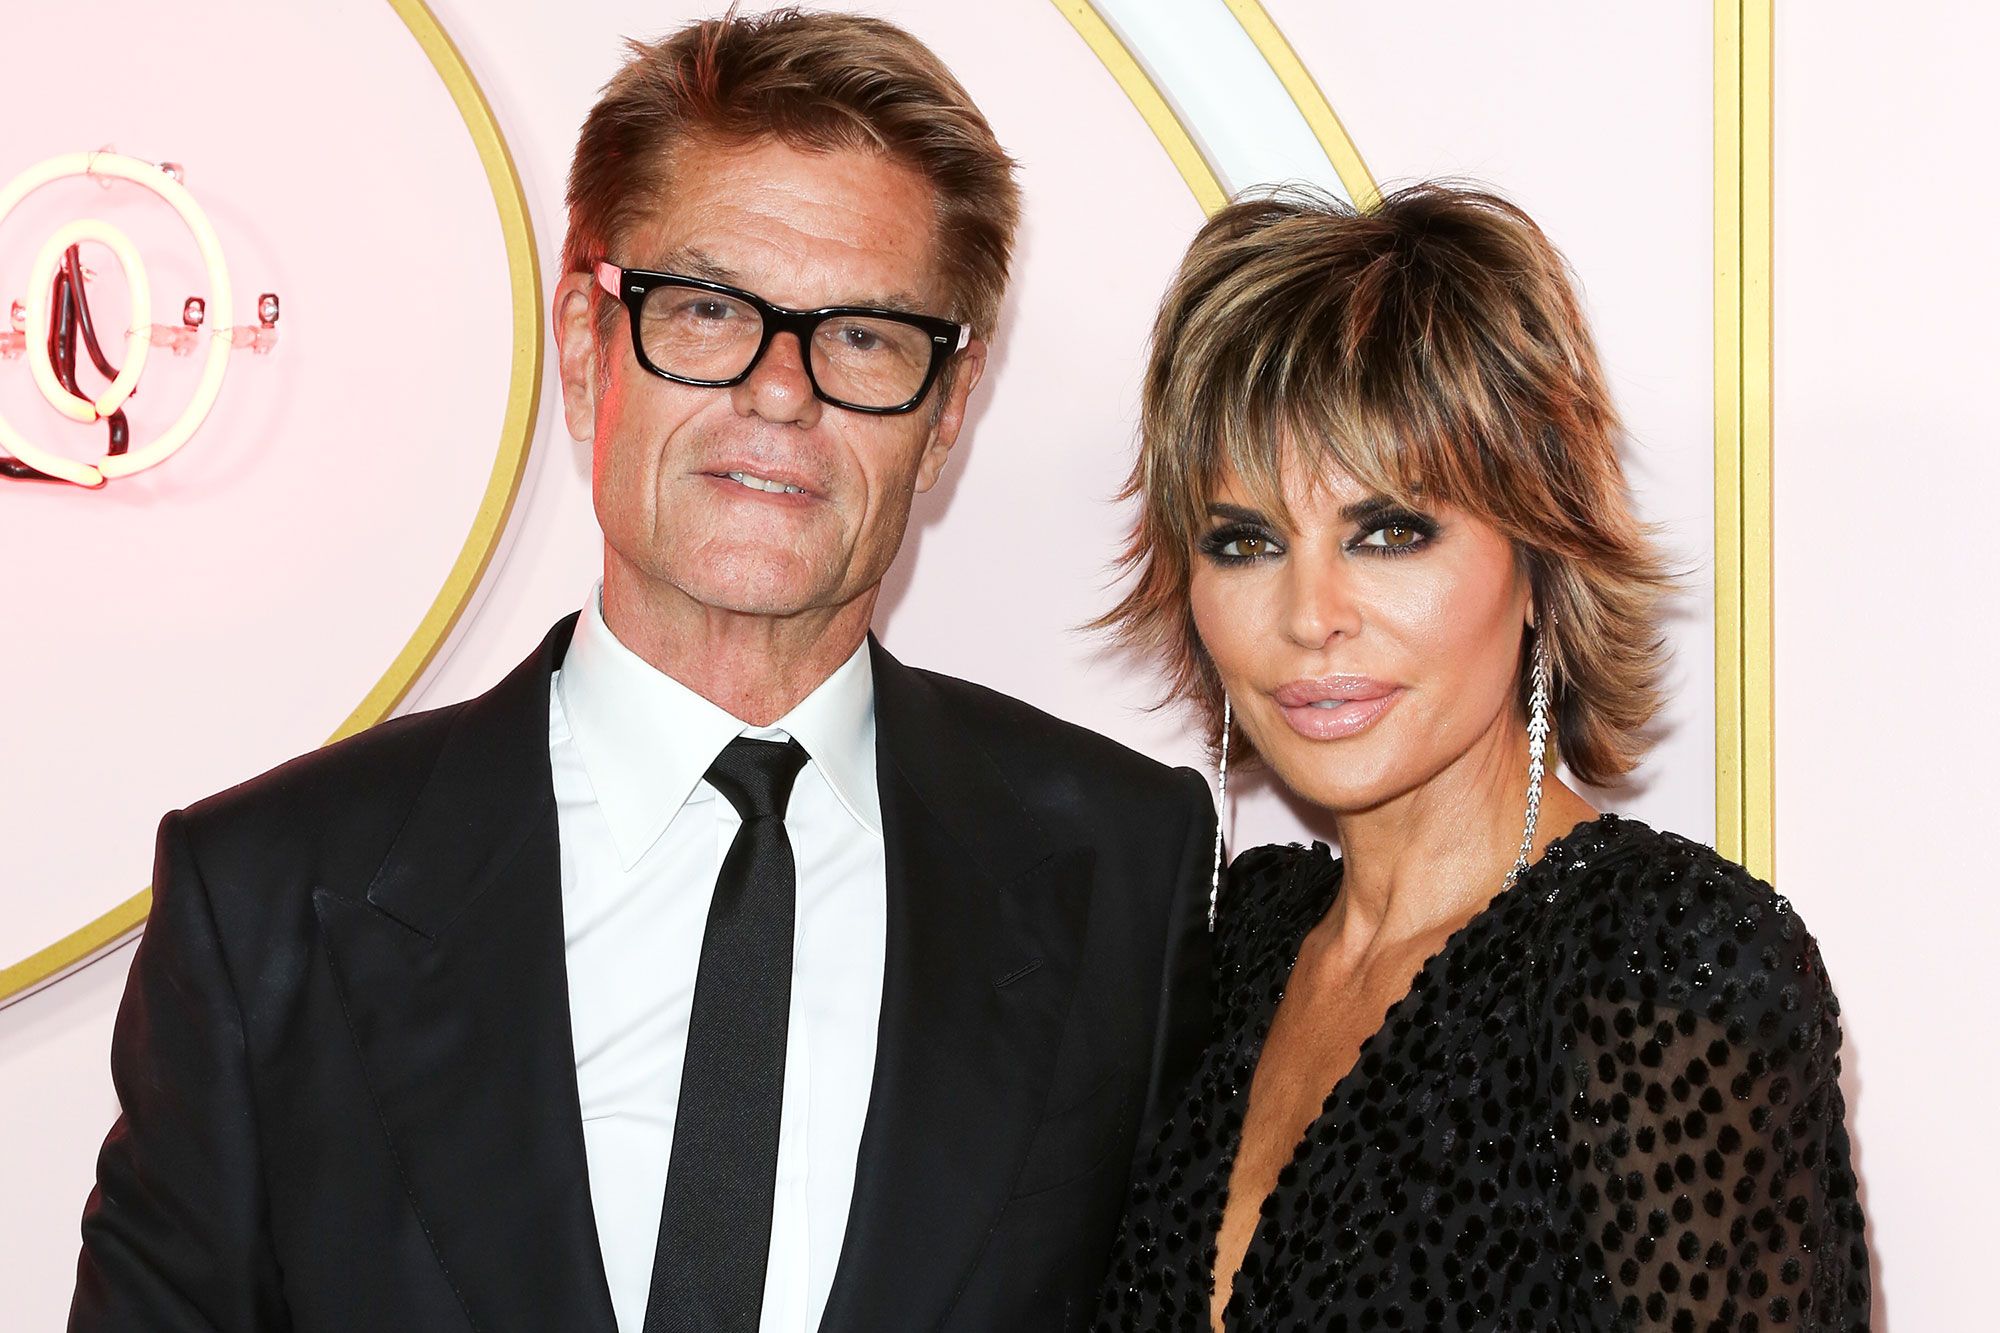 Lisa Rinna's Most Savage Comebacks - Sheridan denied Rinna's allegations that the Desperate Housewives alum cheated on Hamlin during their short-lived marriage. However, the Celebrity Apprentice alum was not having it .